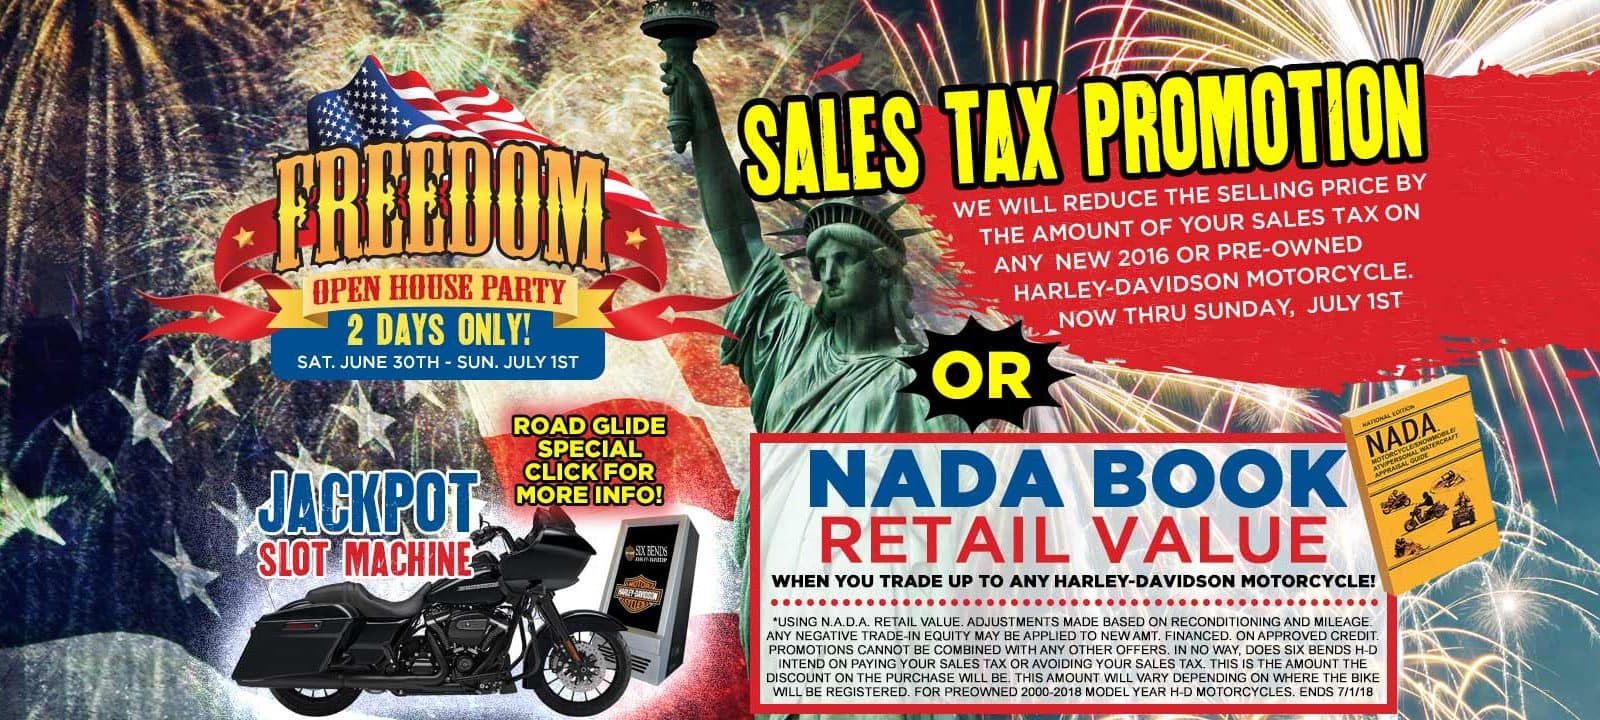 20180625-SBHD-1800x720-Freedom-Open-House-Sales-Tax-or-Retail-Trade